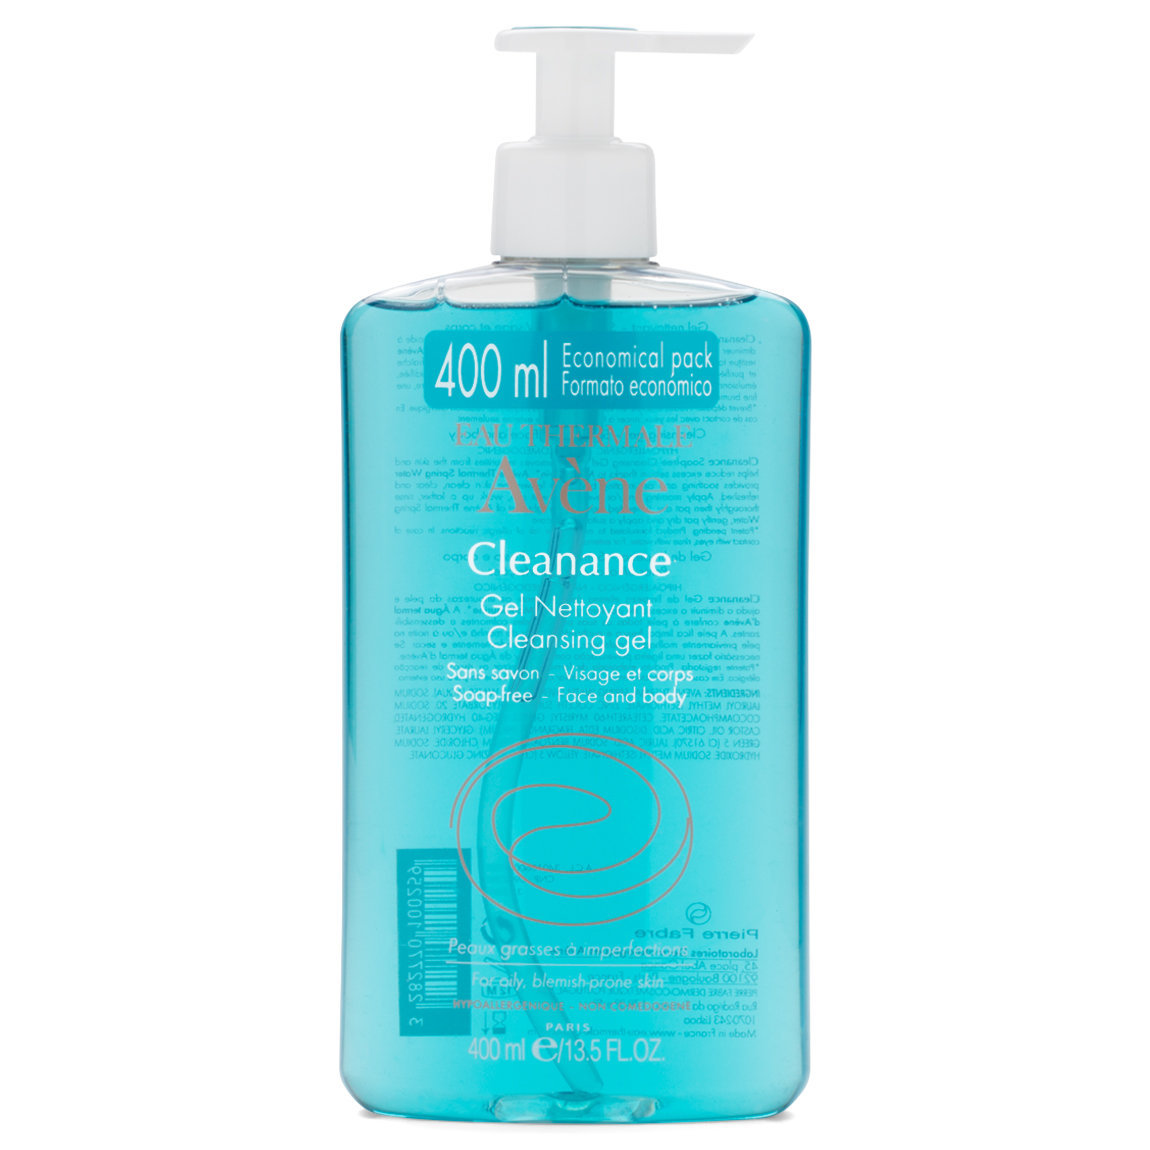 Eau Thermale Avène Cleanance Cleansing Gel 400 ml product swatch.